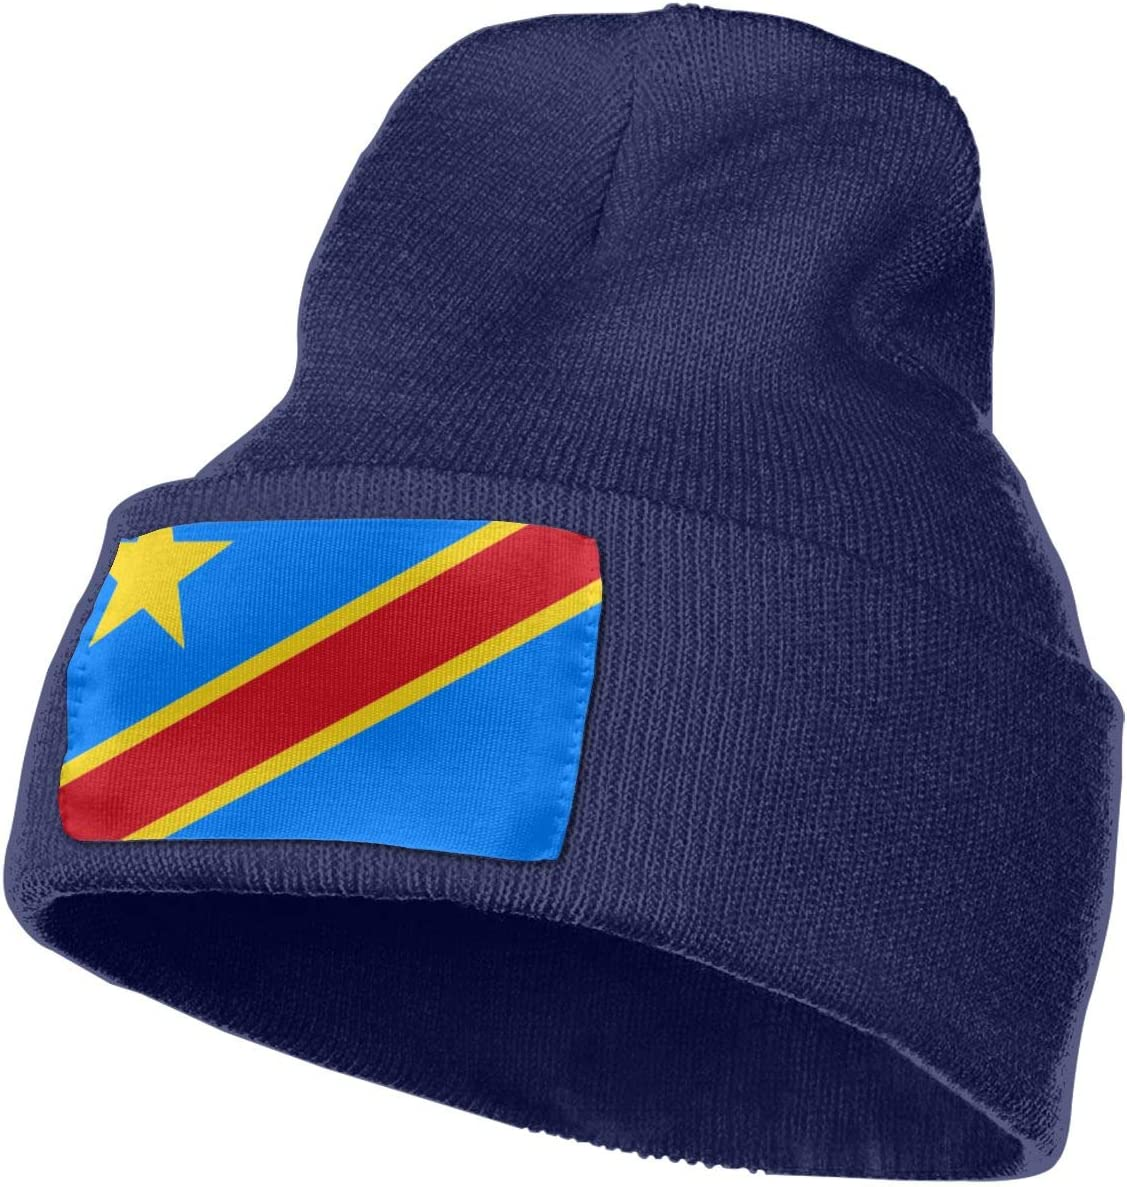 MACA Democratic-Republic-of-Congo Unisex Slouch Beanie Hats Warm /& Stylish Winter Hats Black Thick